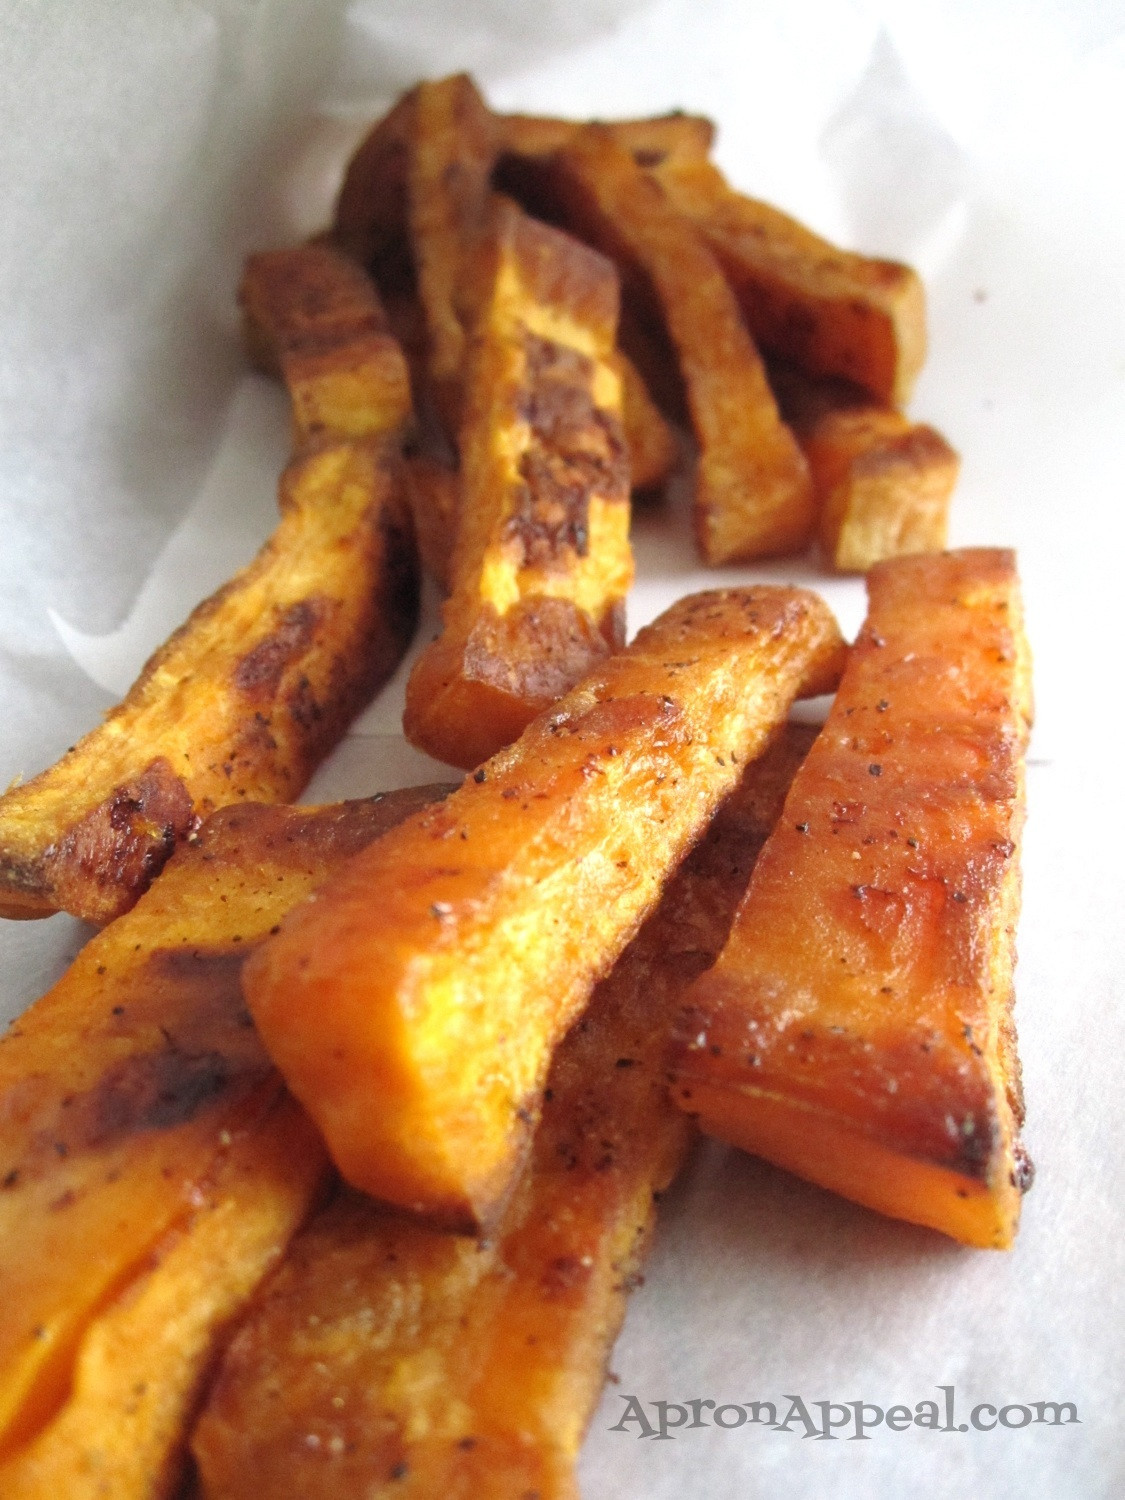 Sweet Potato Fries In Oven  Apron Appeal Sweet Potato Oven Fries